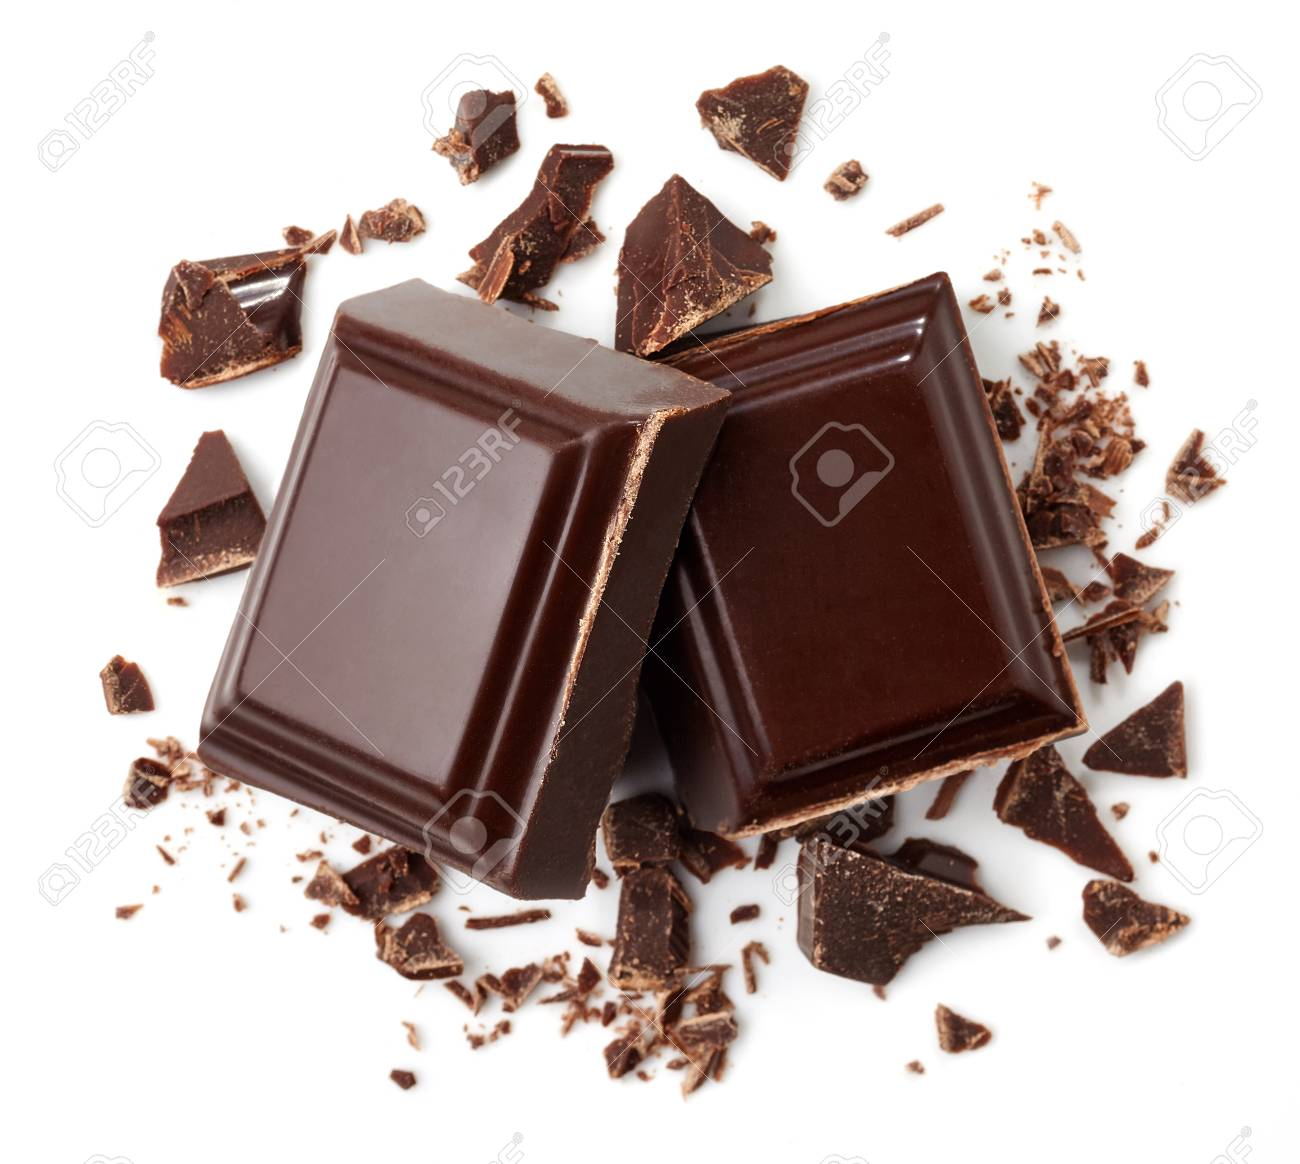 Two pieces of dark chocolate isolated on white background. Top view - 96628335